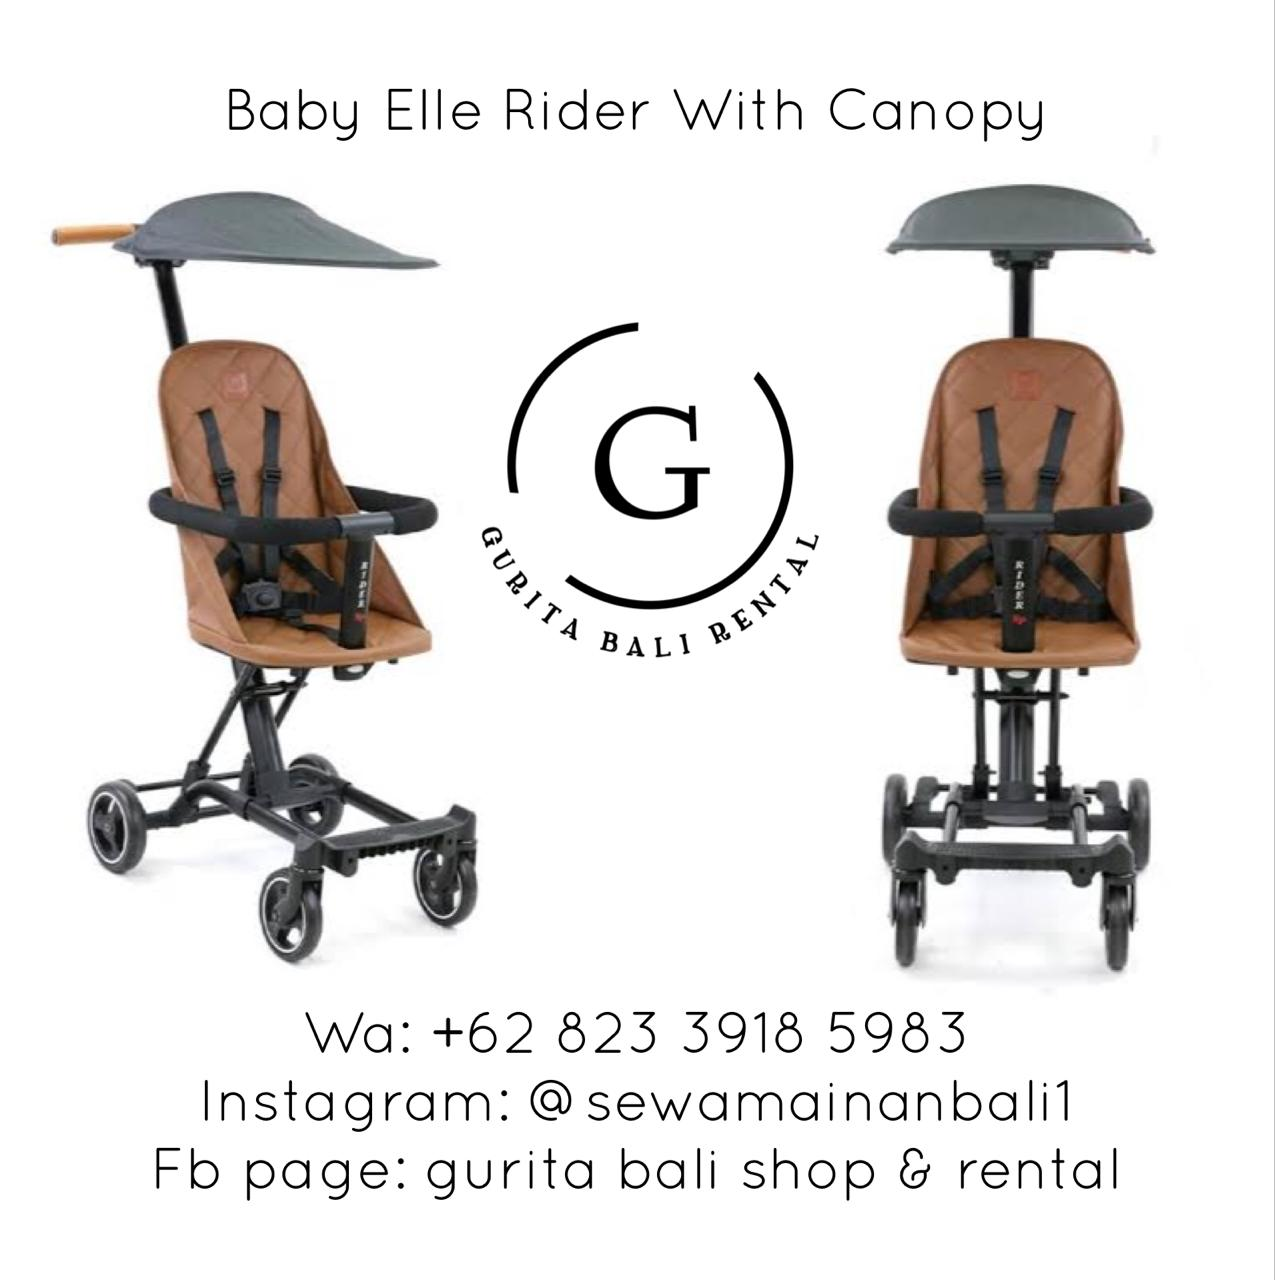 BABYELLE RIDER WITH CANOPY 1